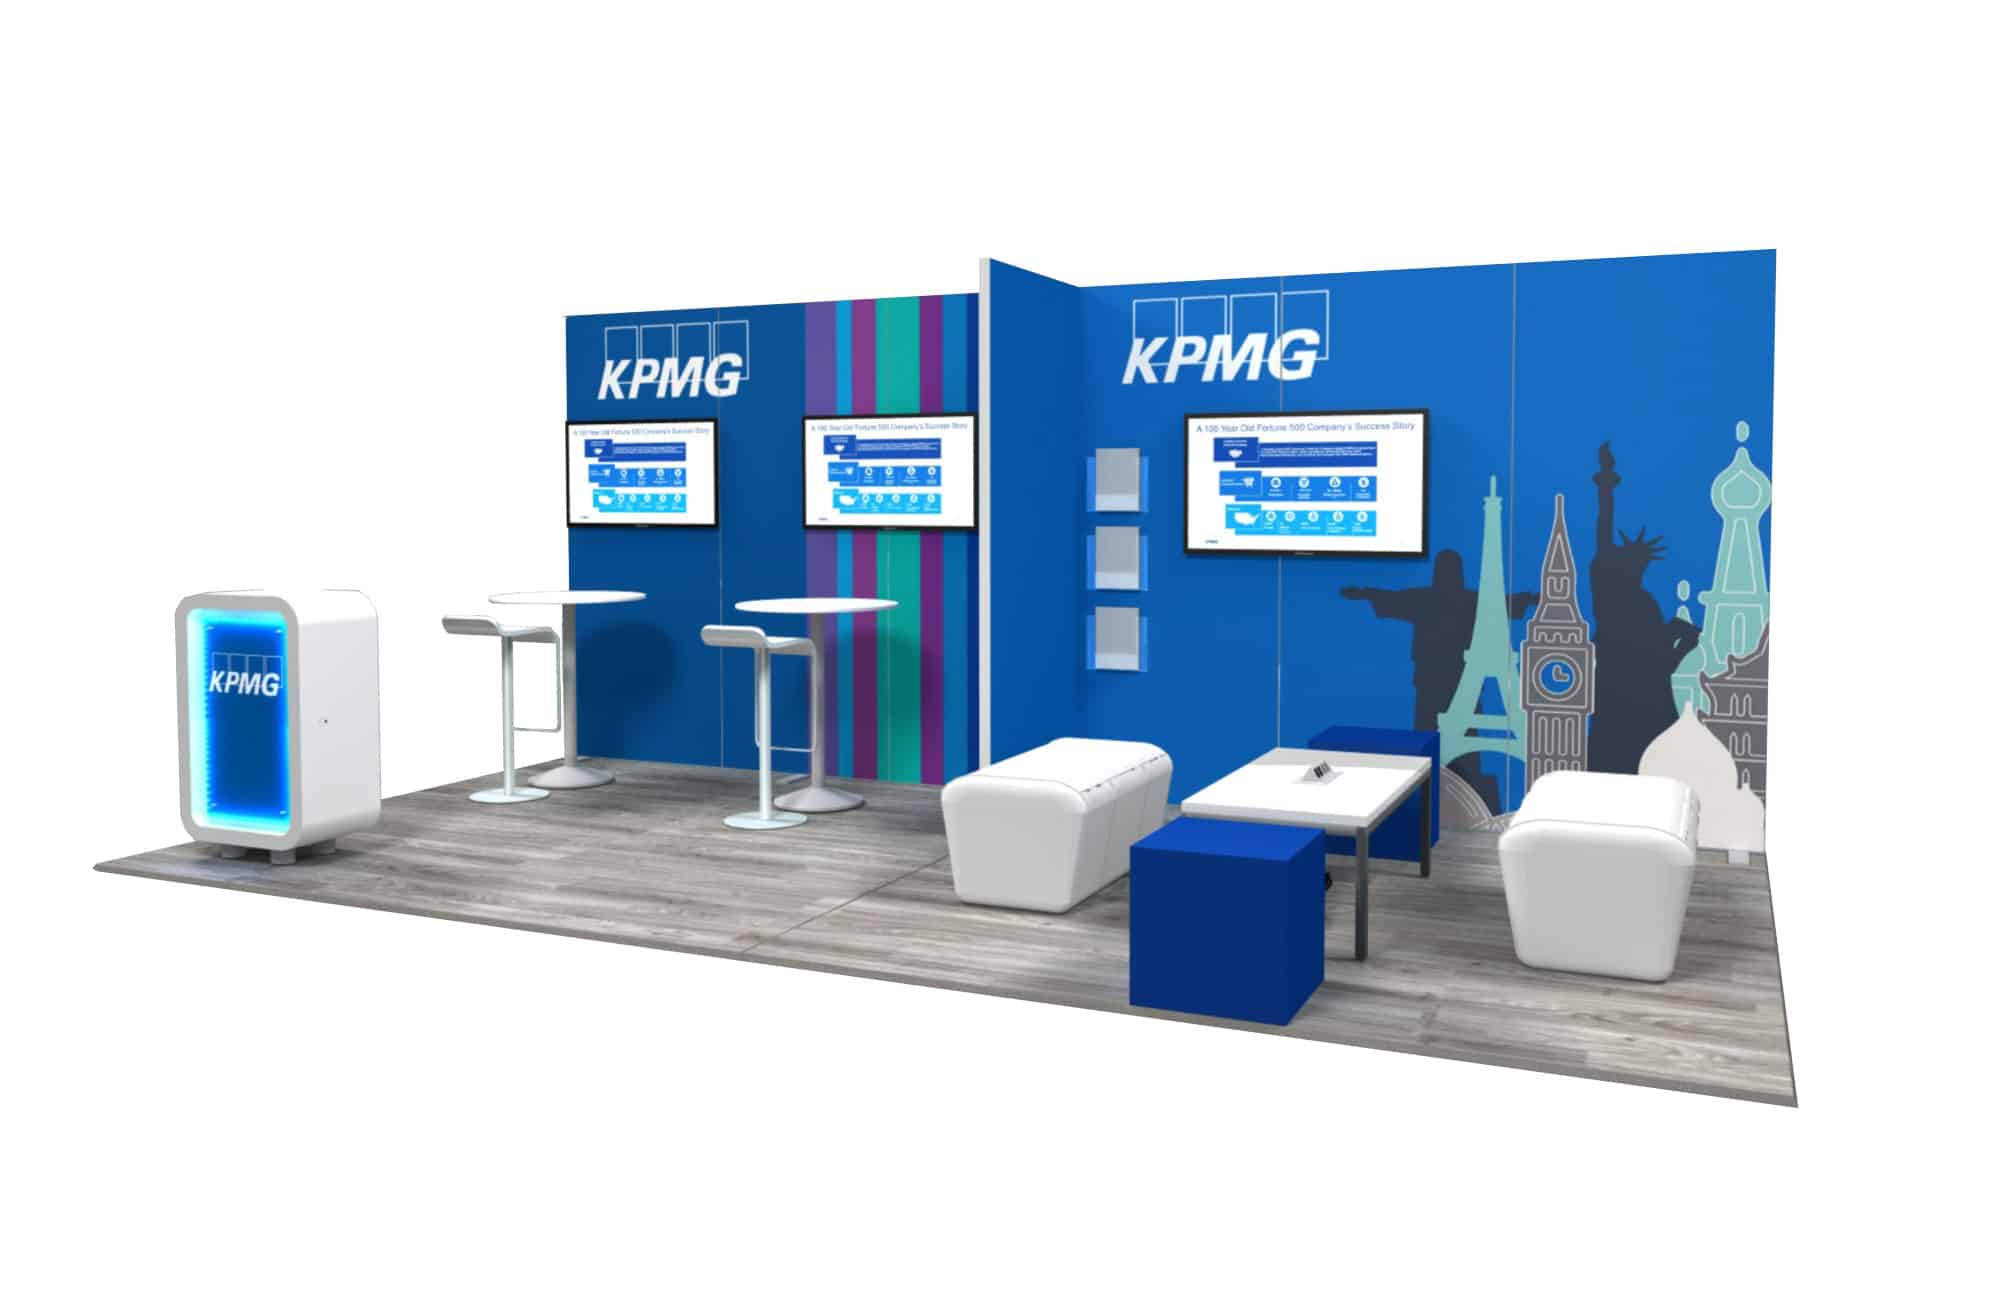 Kpmg 10 215 20 Trade Show Booth Booth Design Ideas